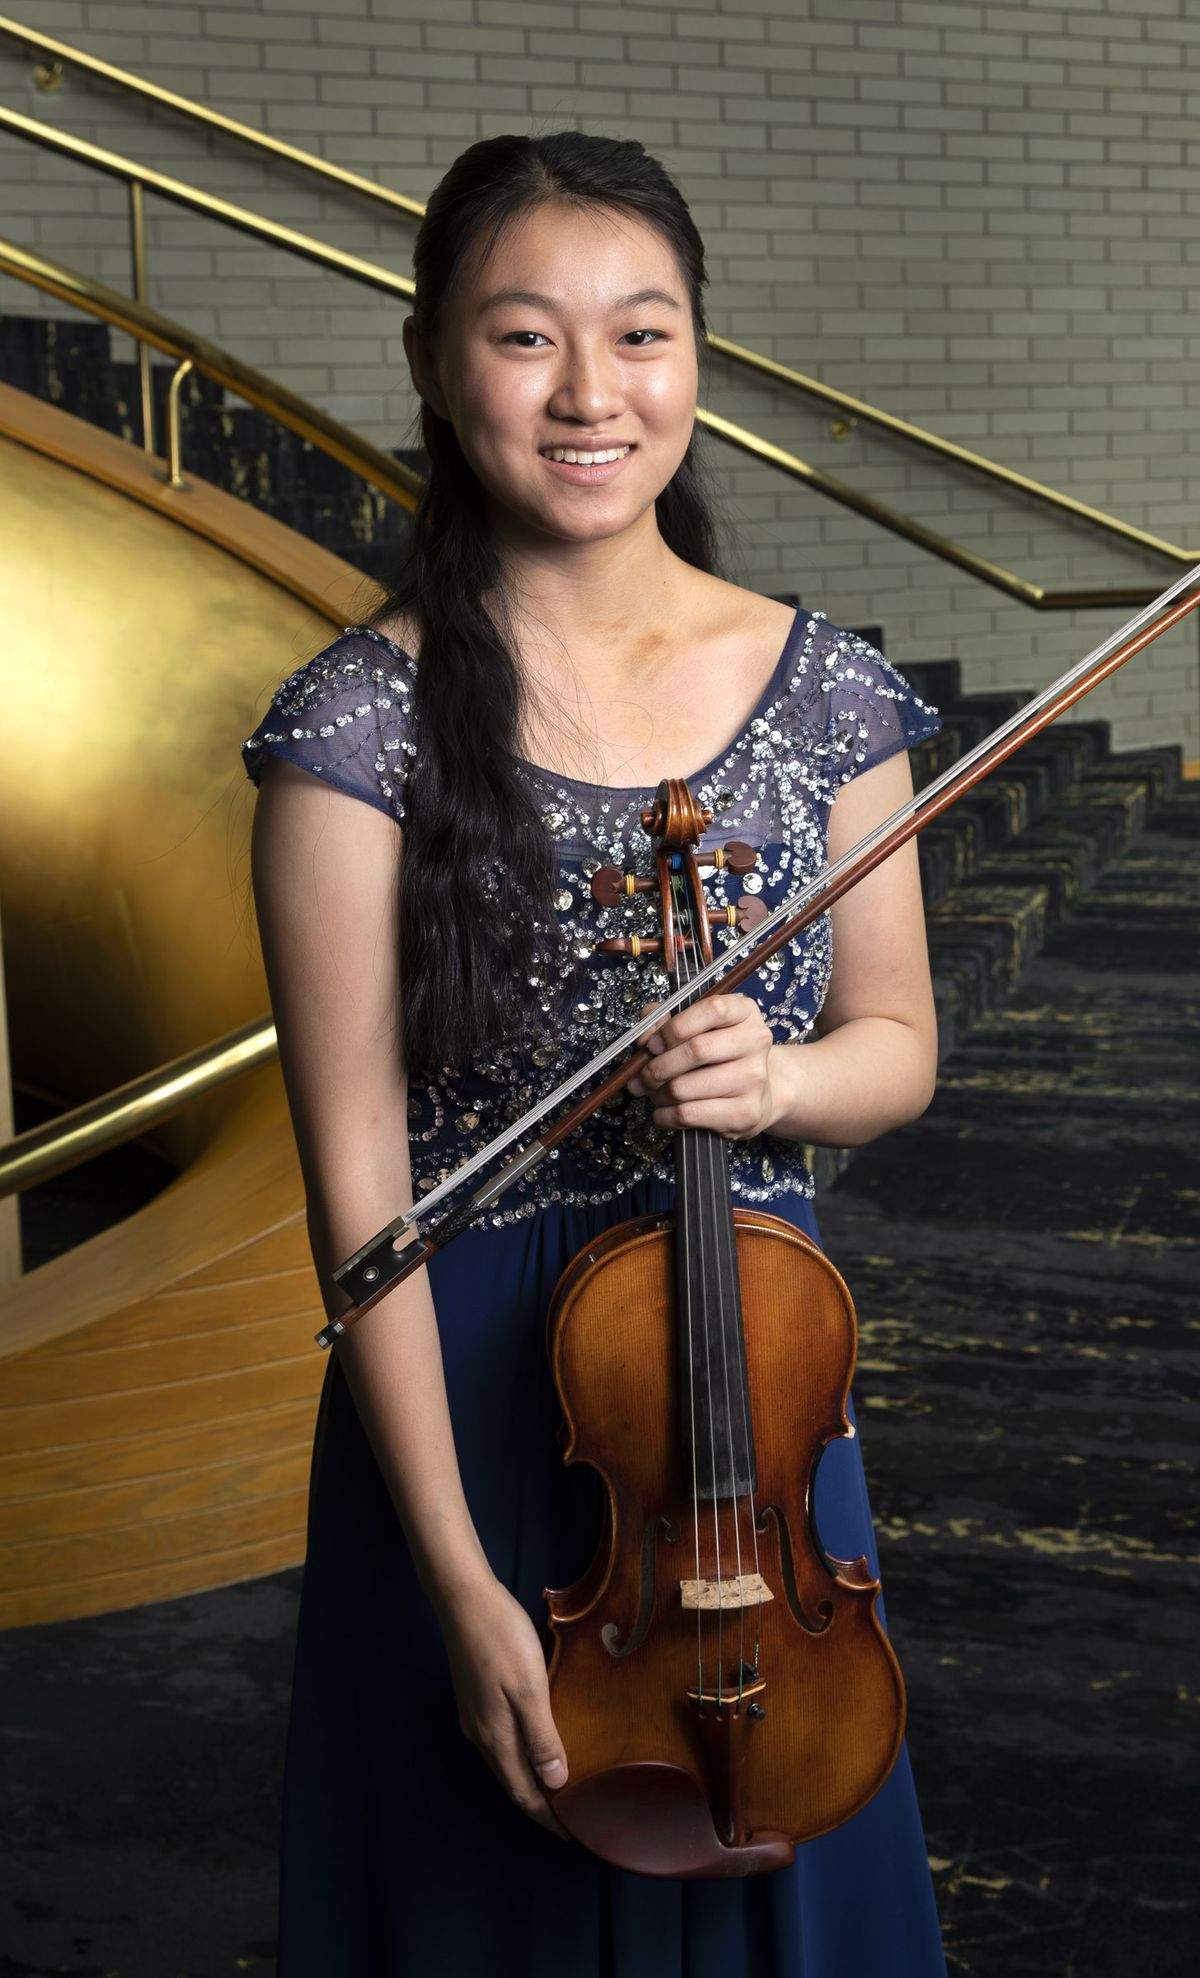 2019 Salute to Youth performer Ellen Hayashi in Abravanel Hall in Salt Lake City on Friday, Aug. 9, 2019.